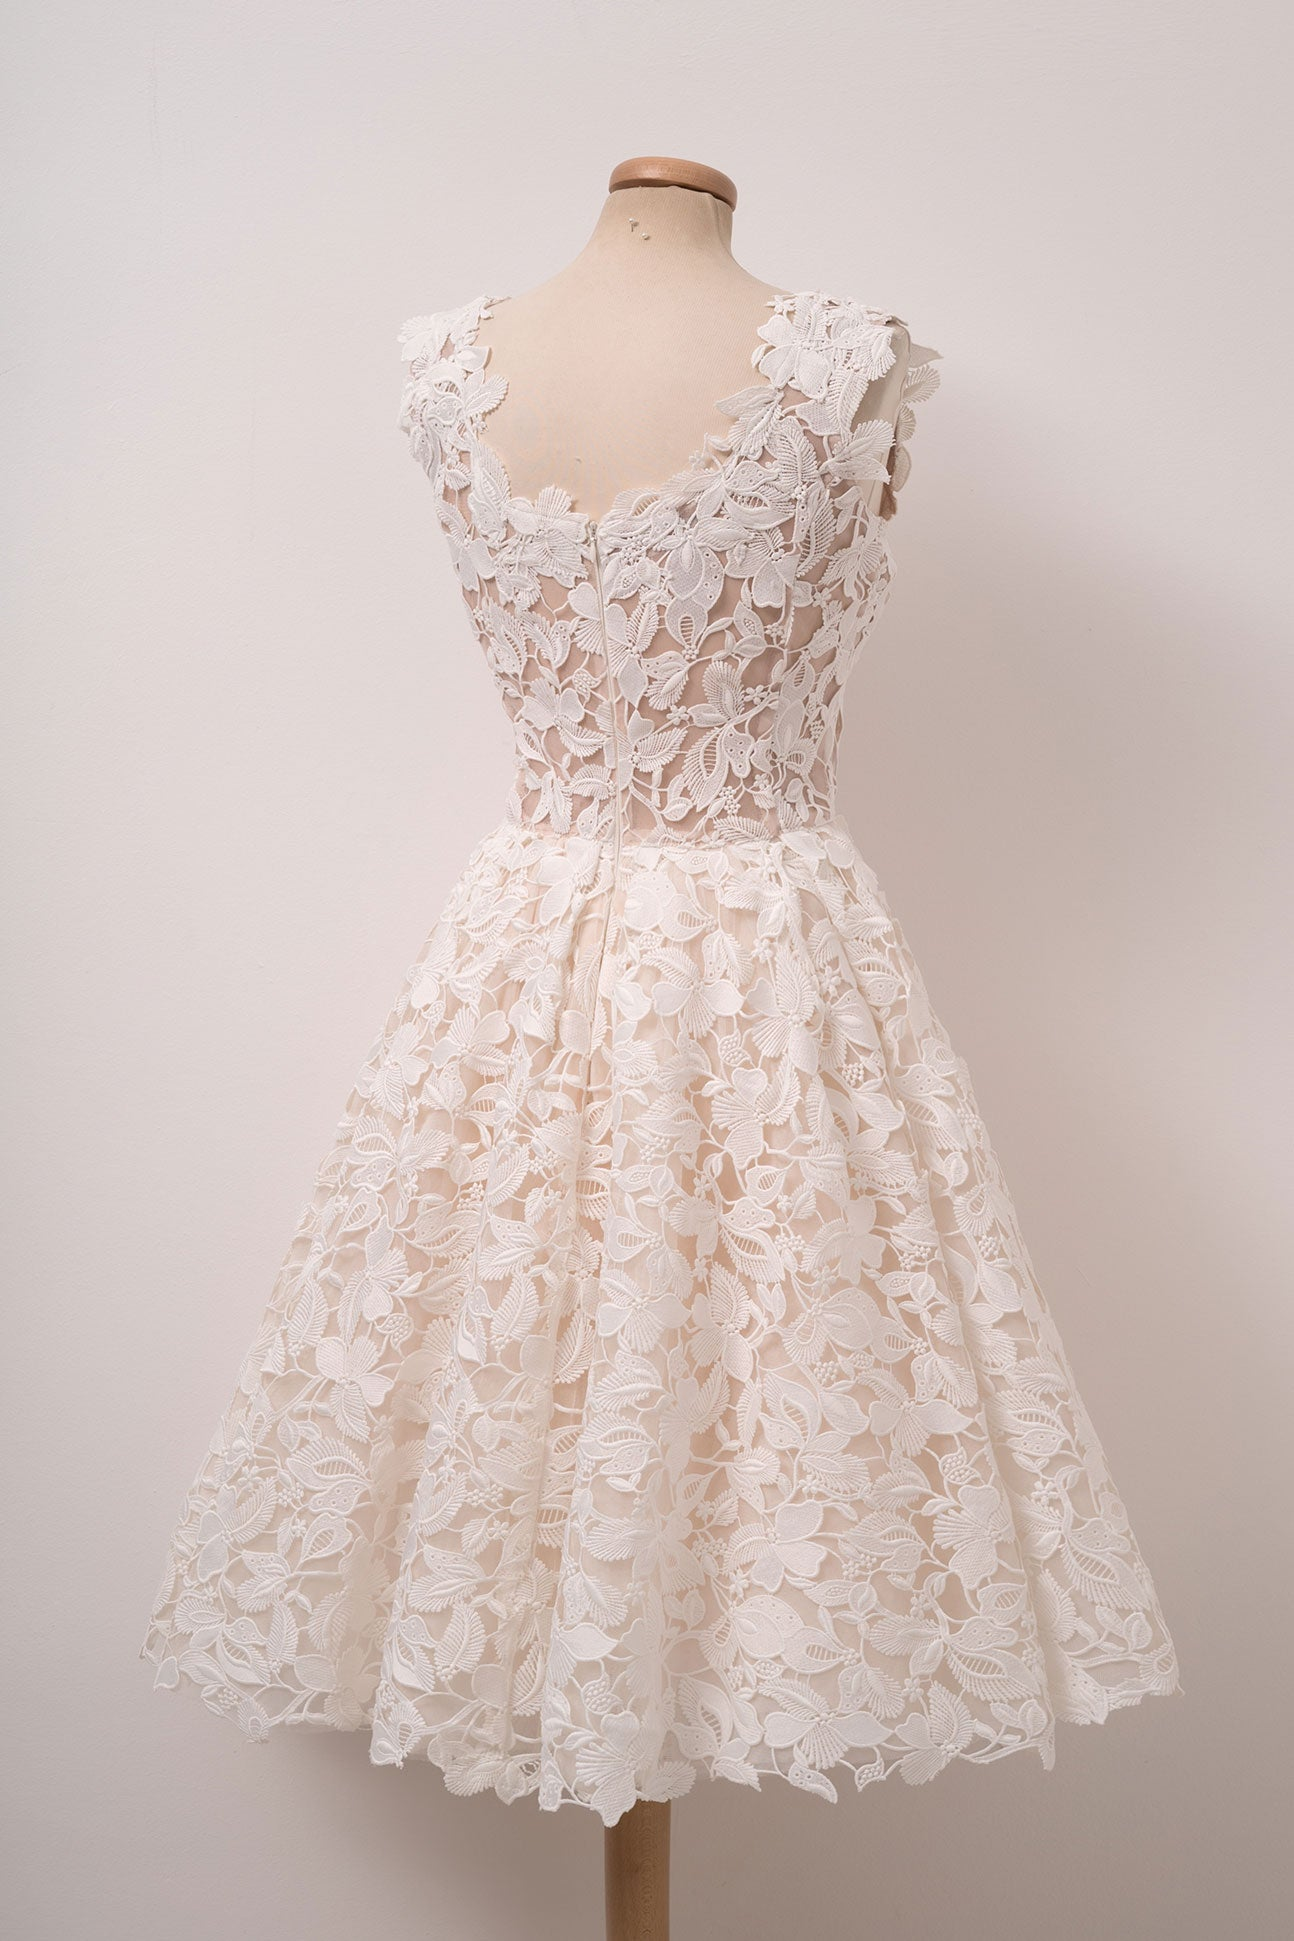 a4028c357c2bf Ivory white lace short prom dress, cute lace homecoming dress - dresstby